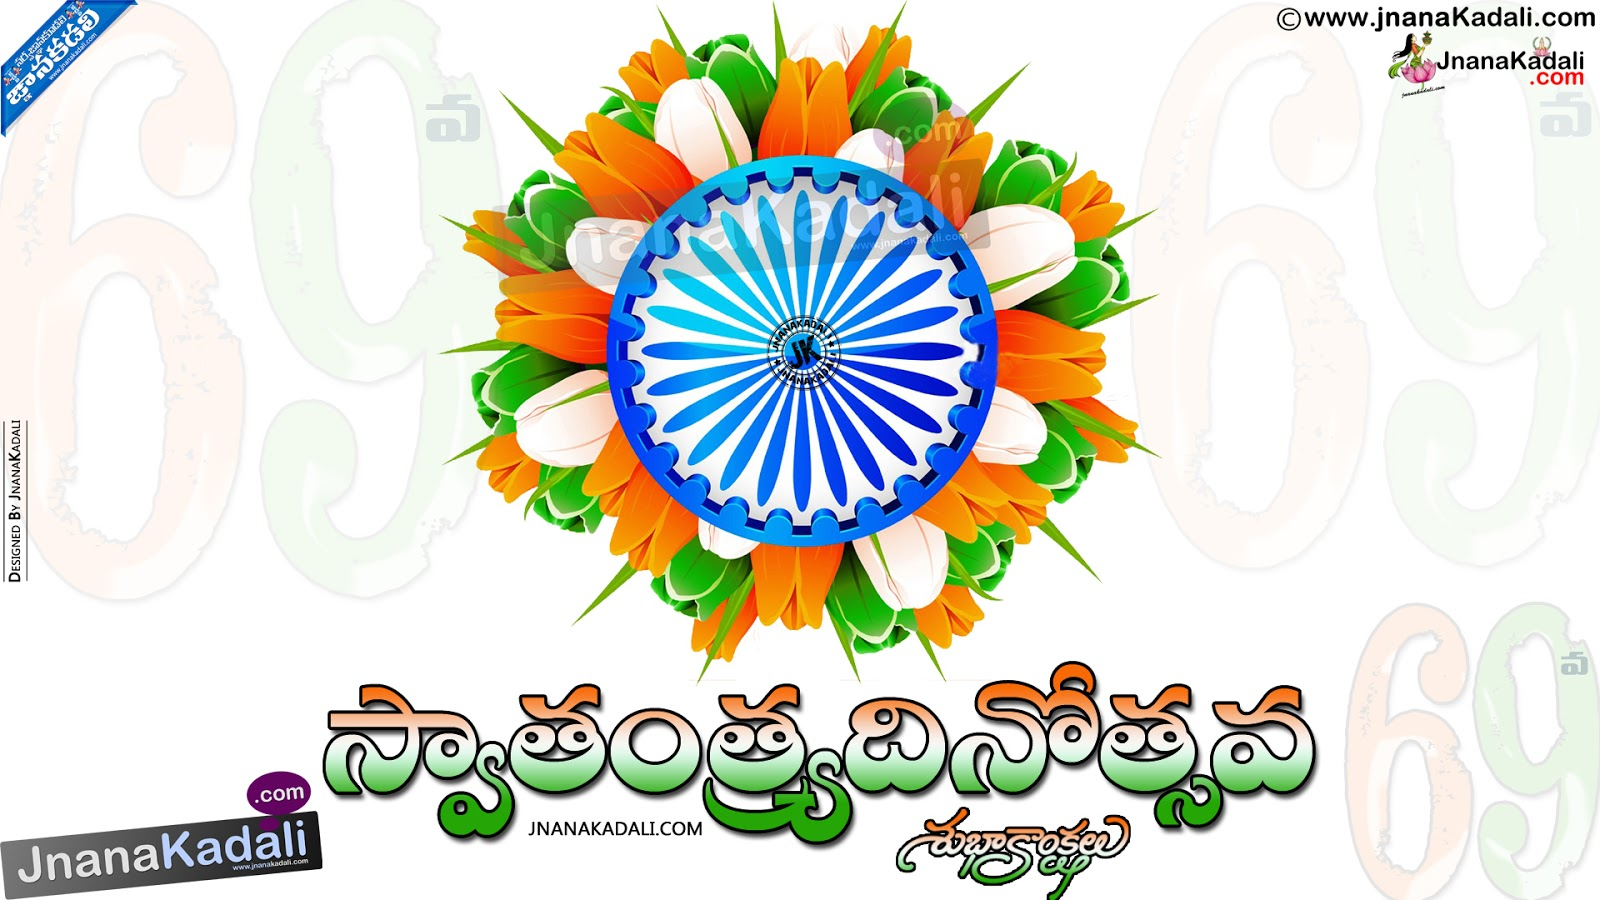 essay on independence day of india in telugu 26 january republic day essay (lines) for children:- get 26 january essay for class 4 5 6 students and participates on republic day essay in hindi and essay paragraph in english marathi tamil telugu on this 26 january 2018 26 january of the year is also called republic day.